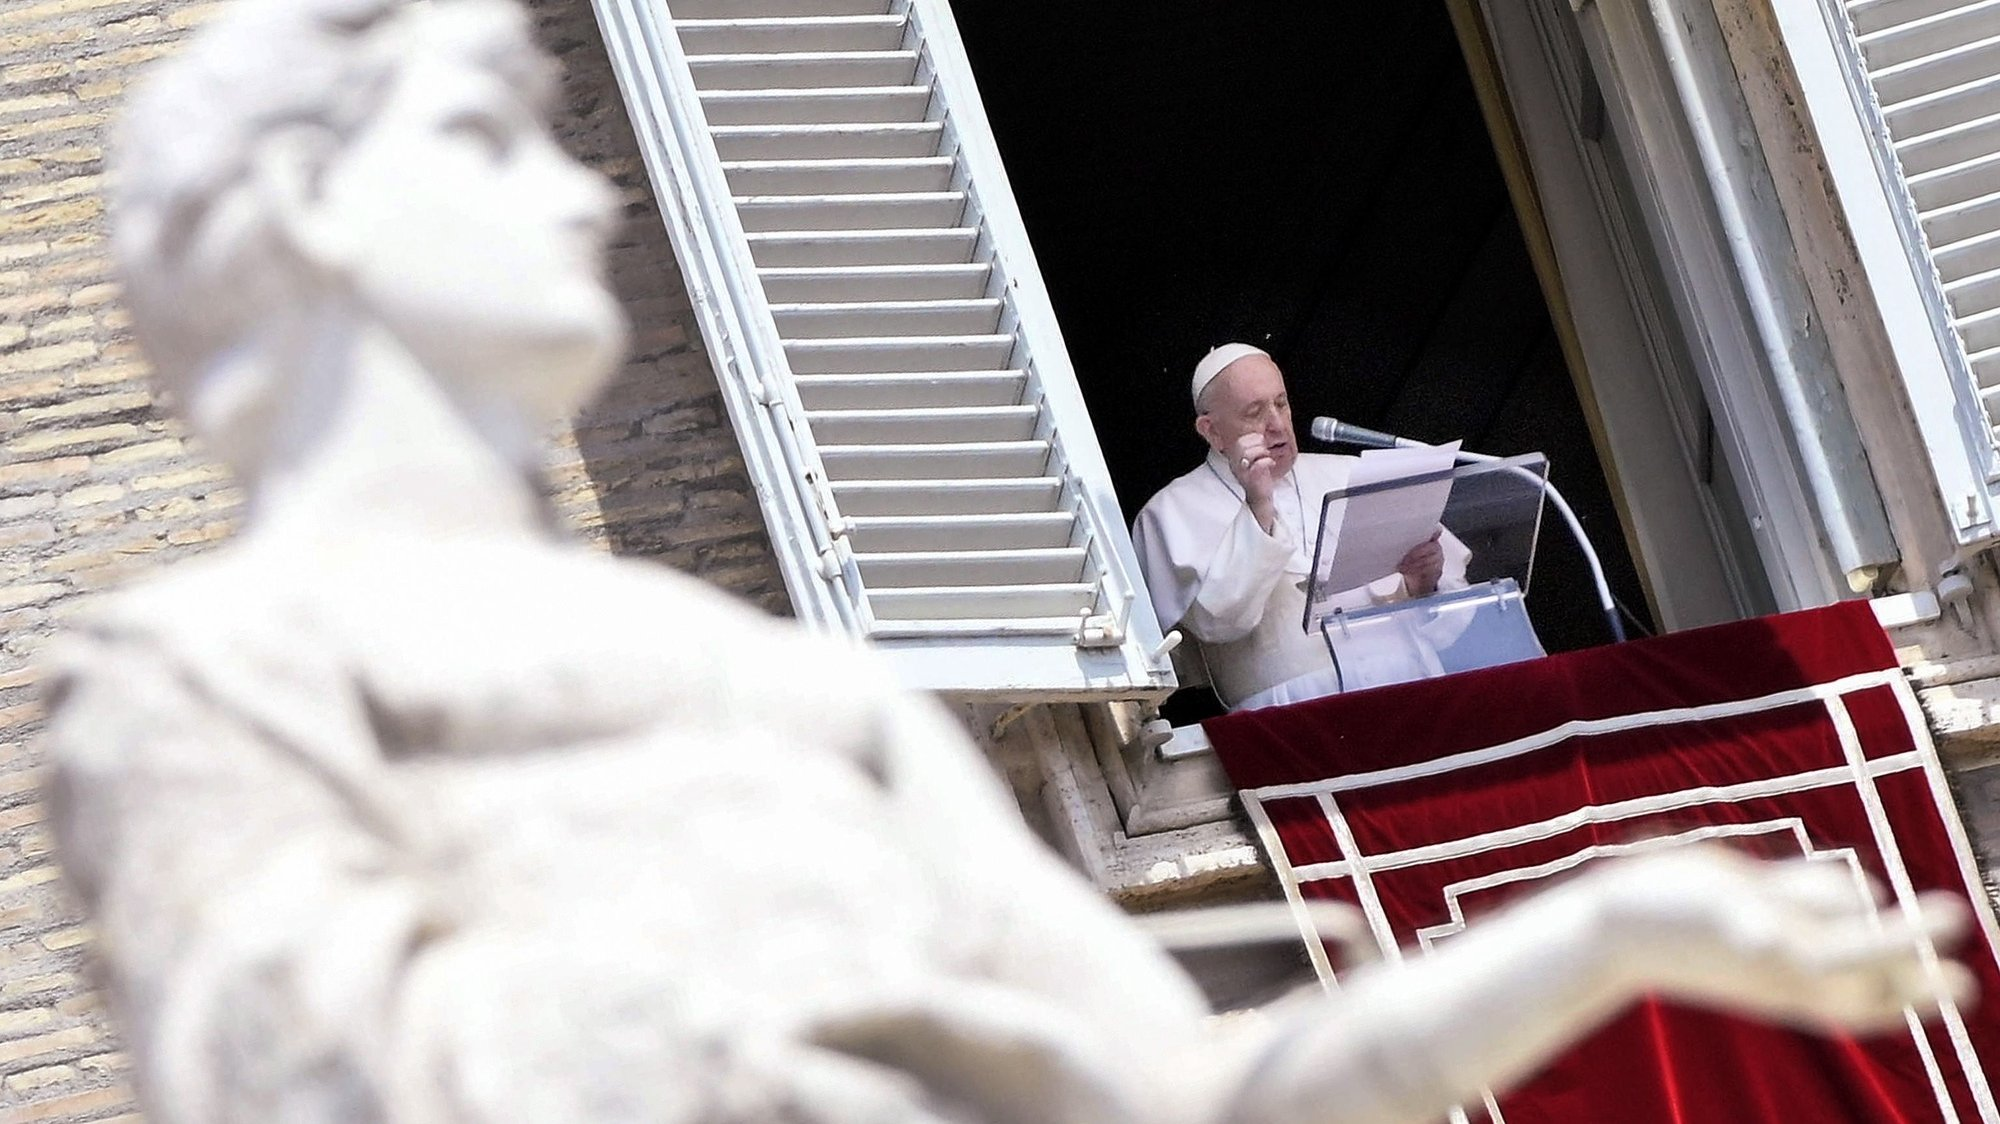 epa09266722 Pope Francis leads his Sunday Angelus prayer from the window of his office overlooking Saint Peter's Square, Vatican City, 13 June 2021.  EPA/CLAUDIO PERI